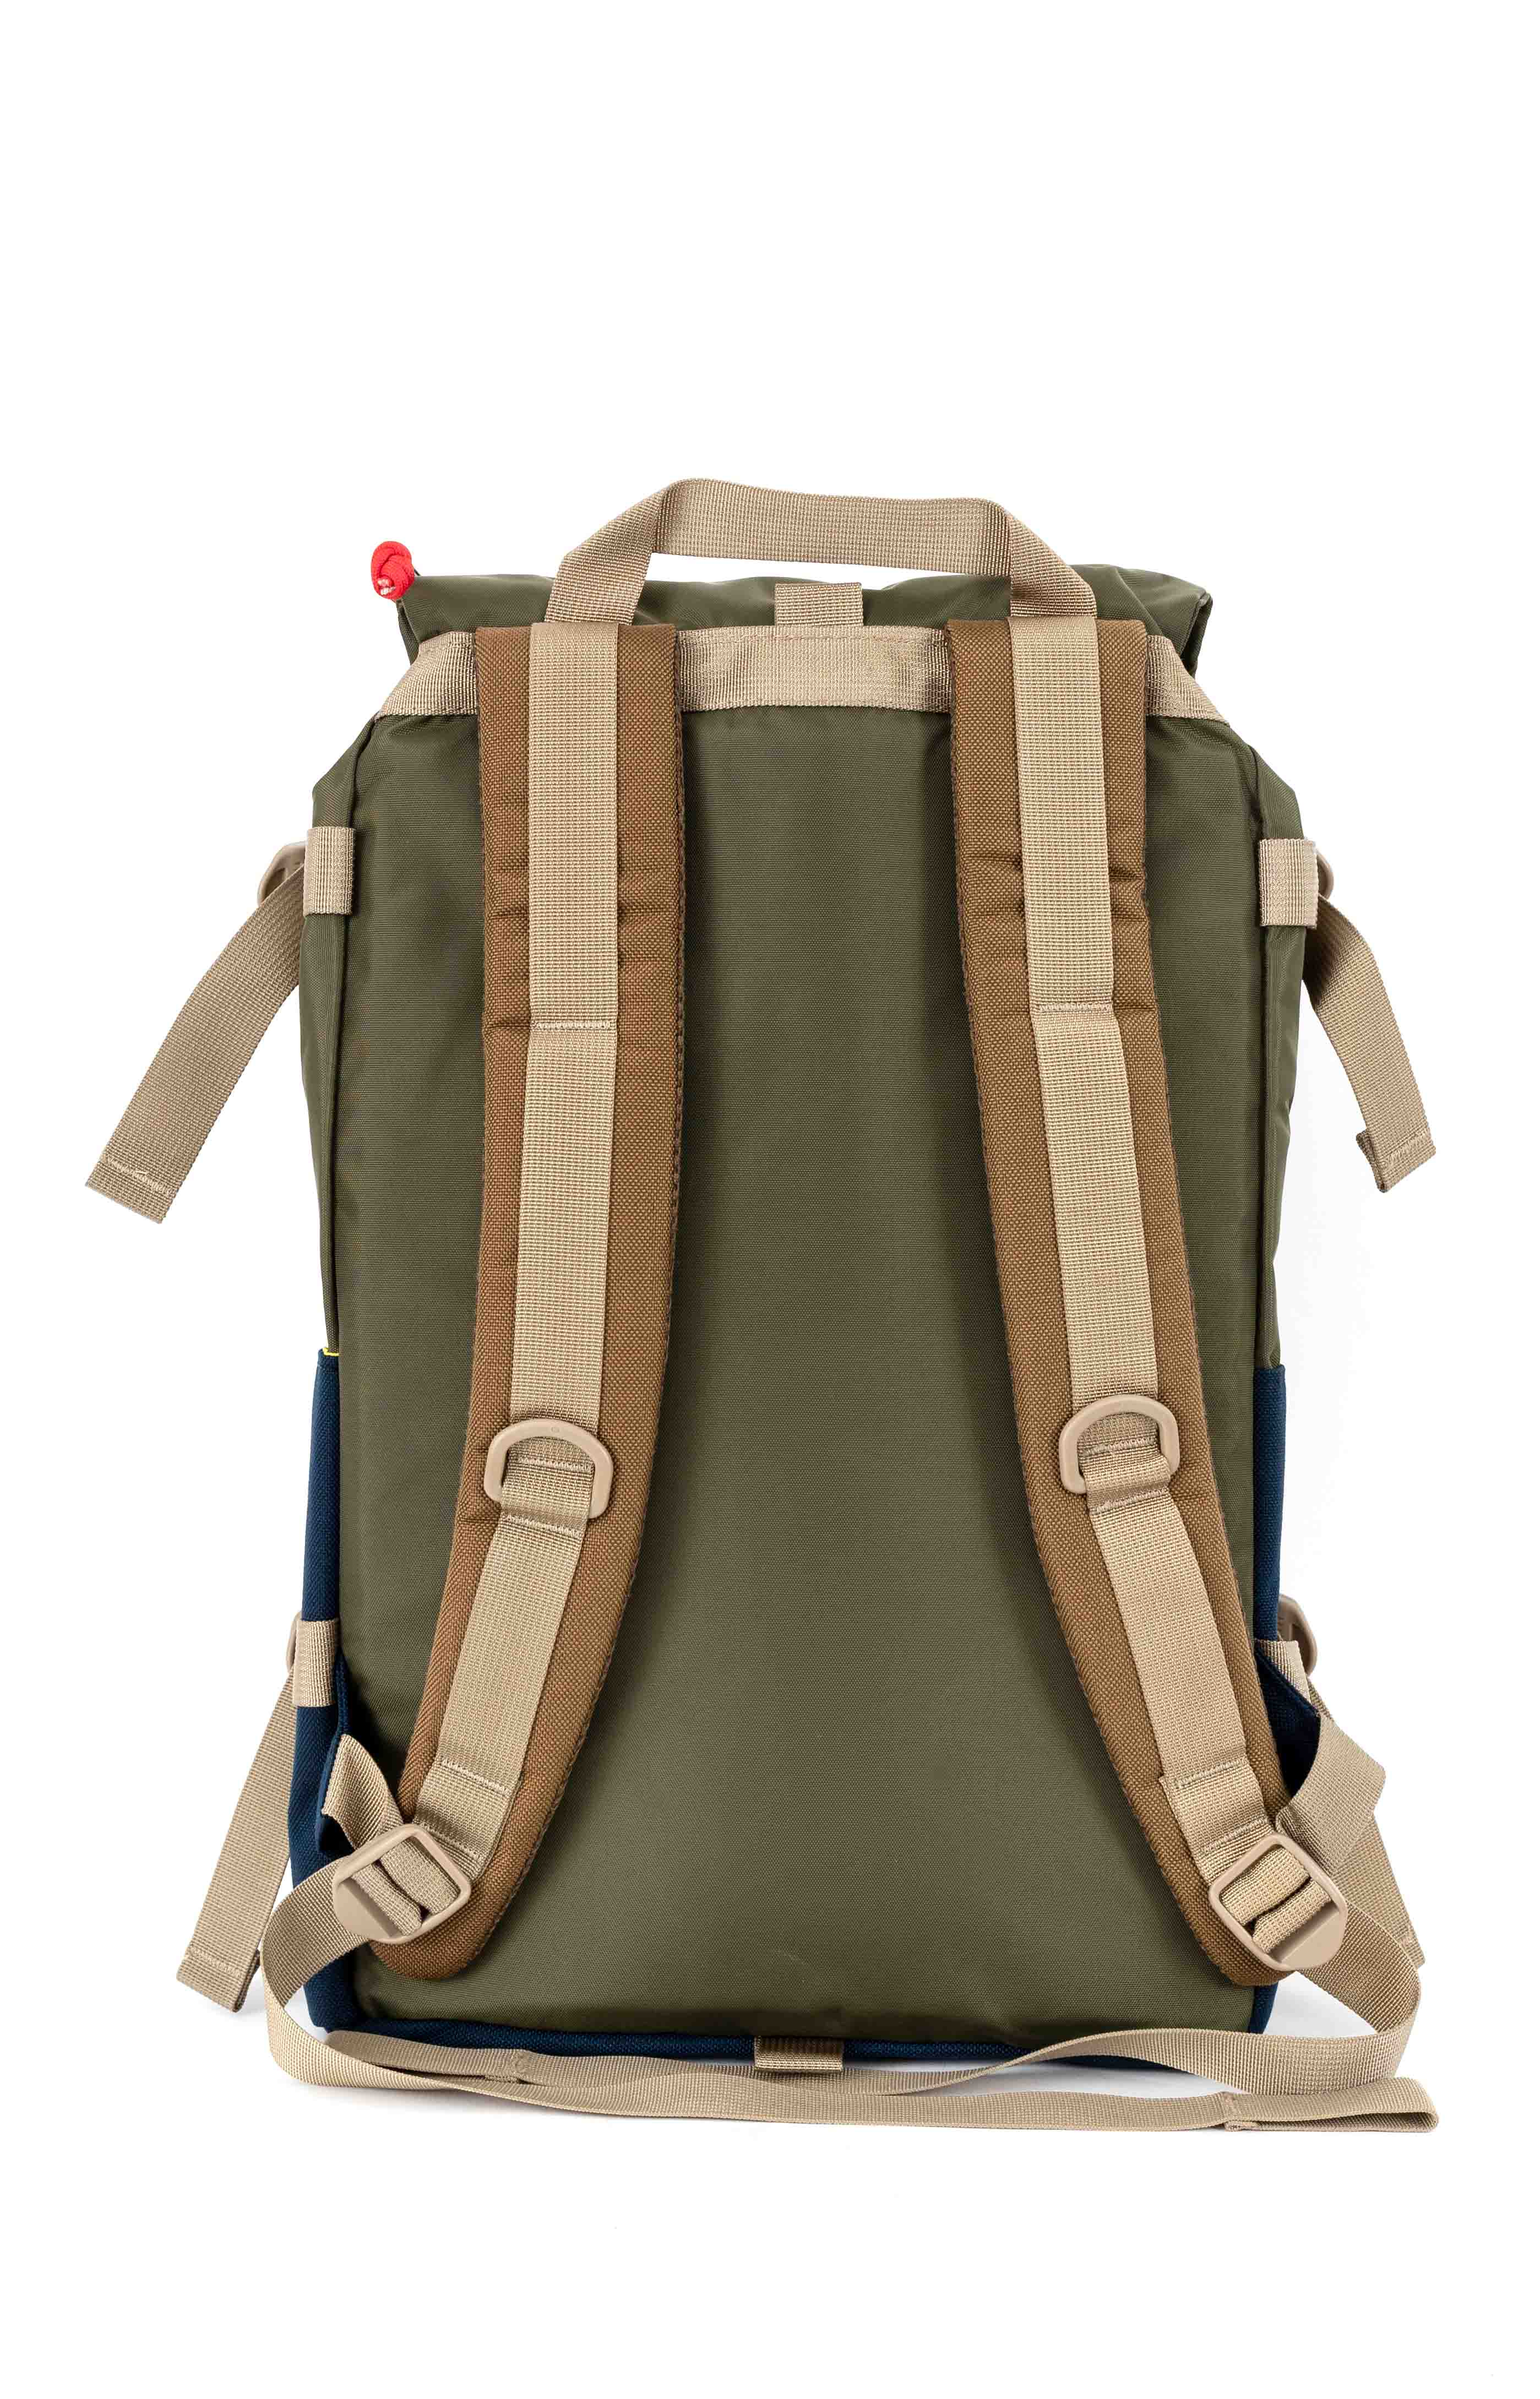 Rover Pack - Olive/Navy 3